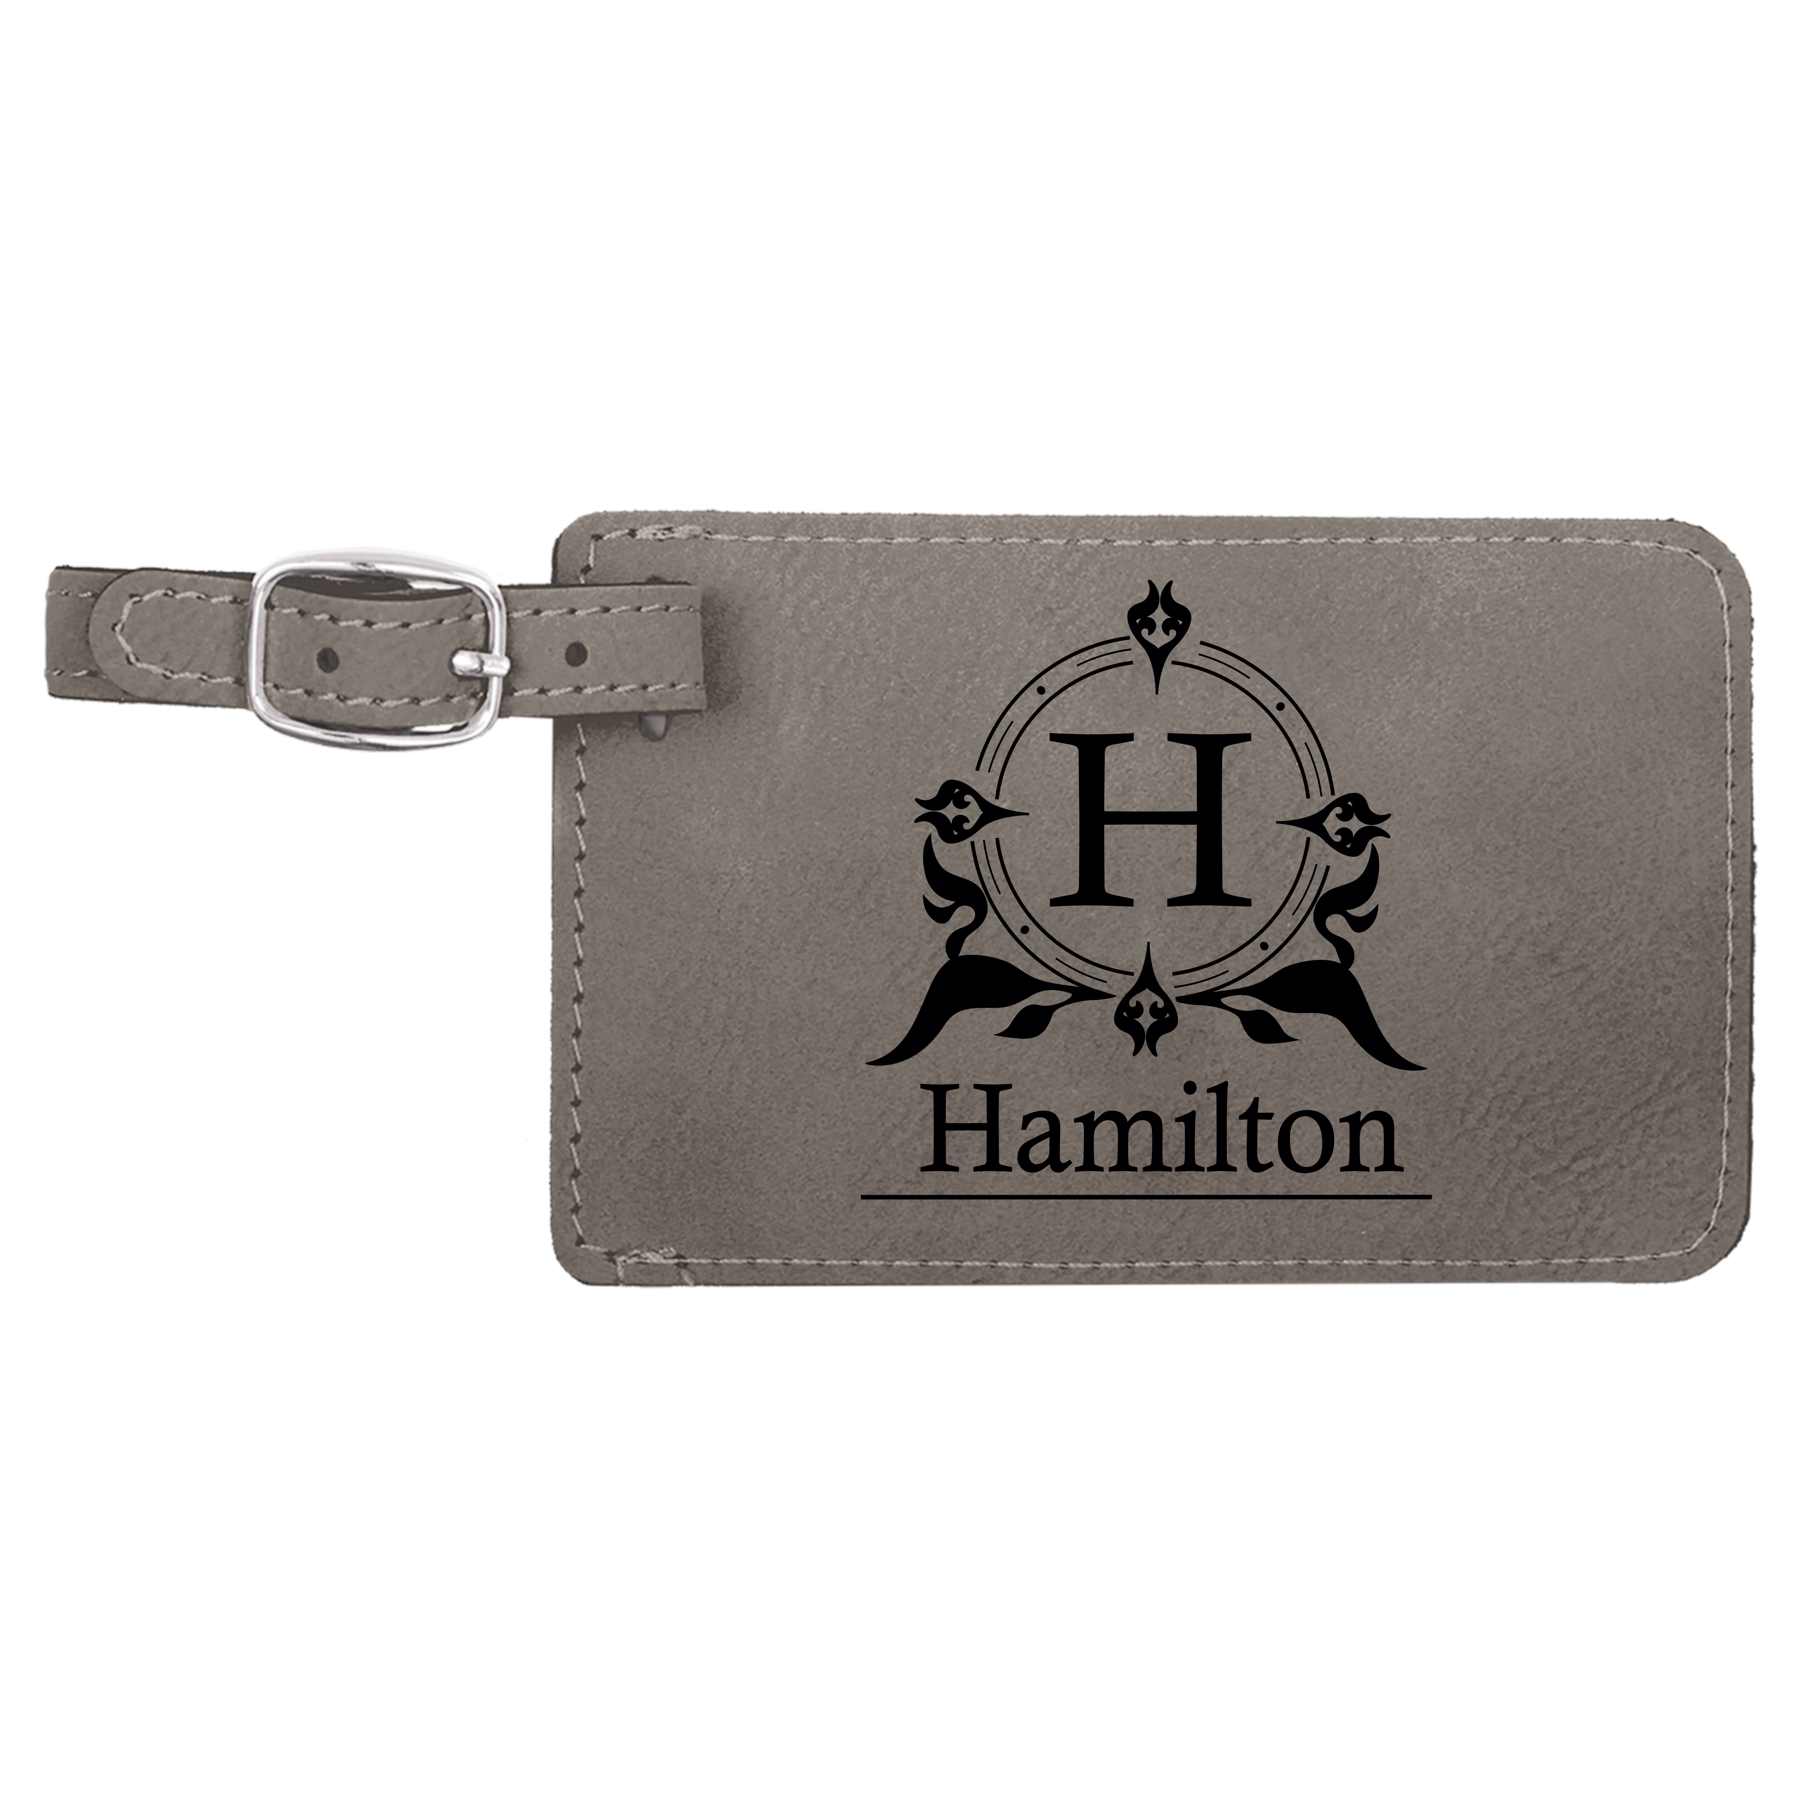 Personalised Initials Black Luggage Tag Gift Honeymoon Present Holiday Travel Luggage & Travel Accessories